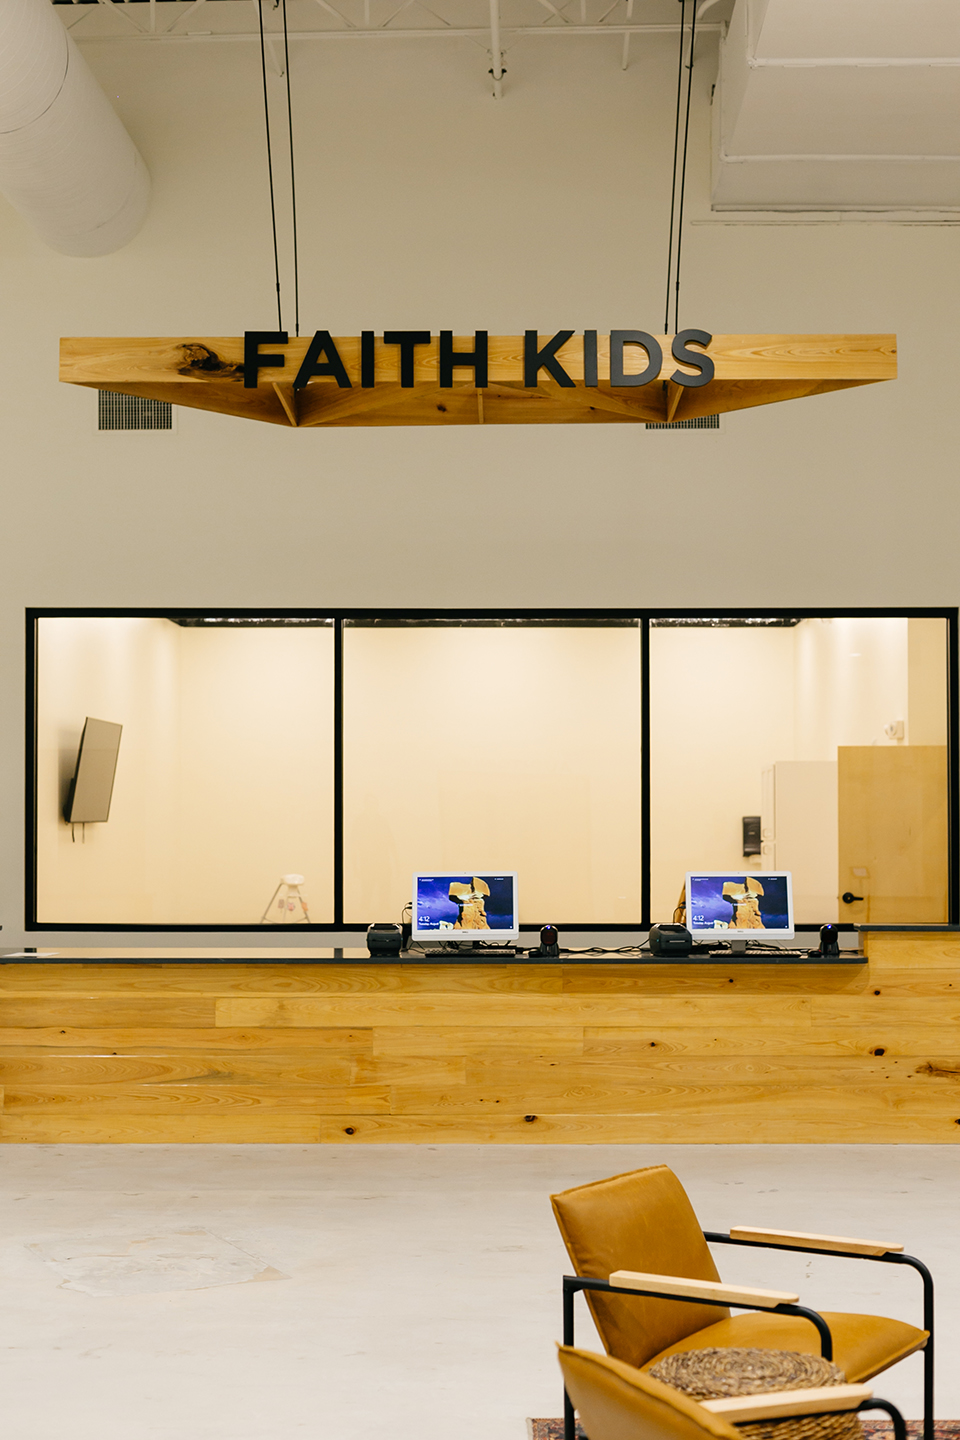 faith-assembly-faith-kids-web